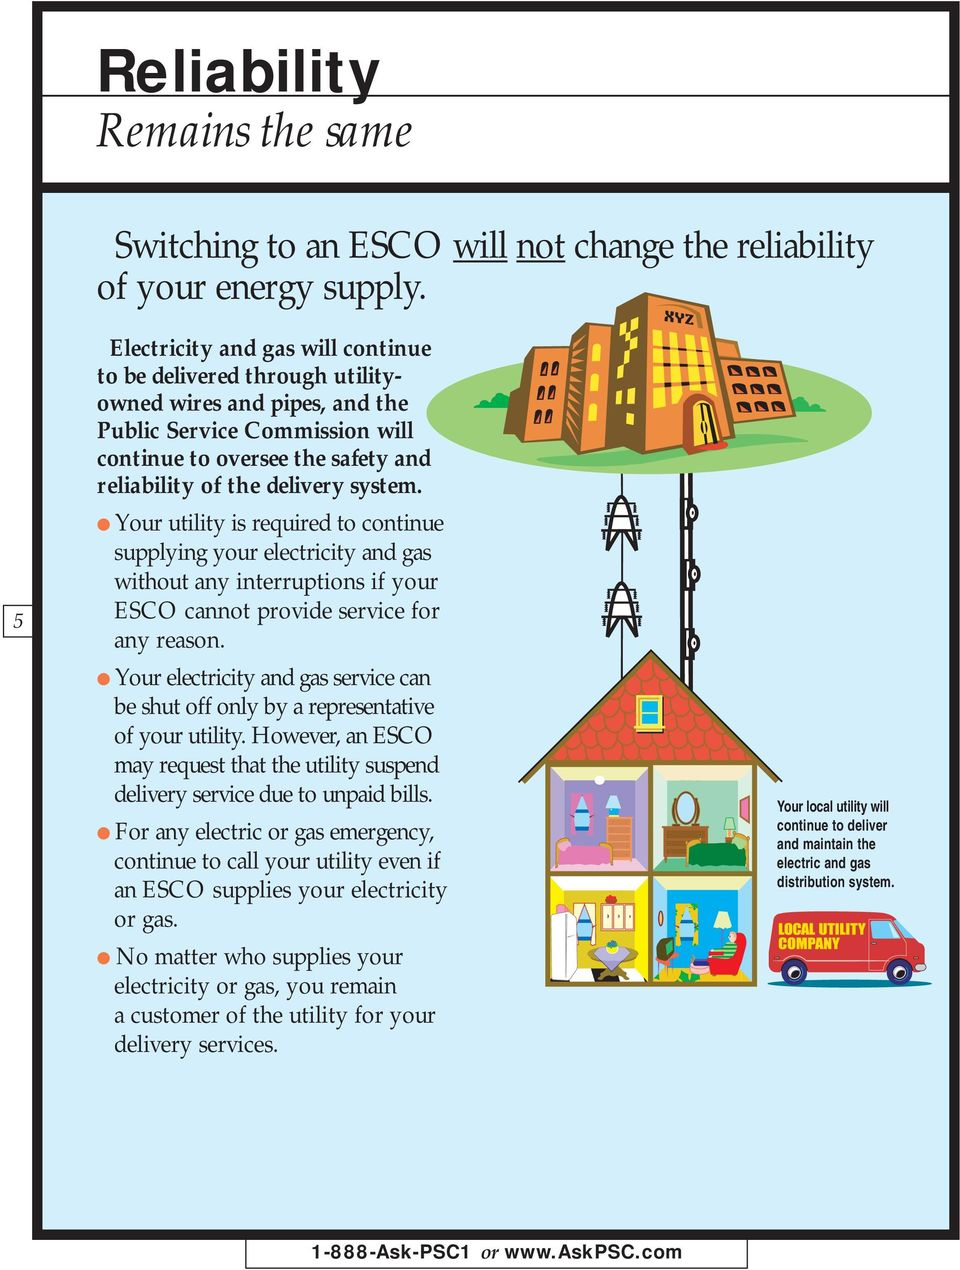 Your utility is required to continue supplying your electricity and gas without any interruptions if your ESCO cannot provide service for any reason.